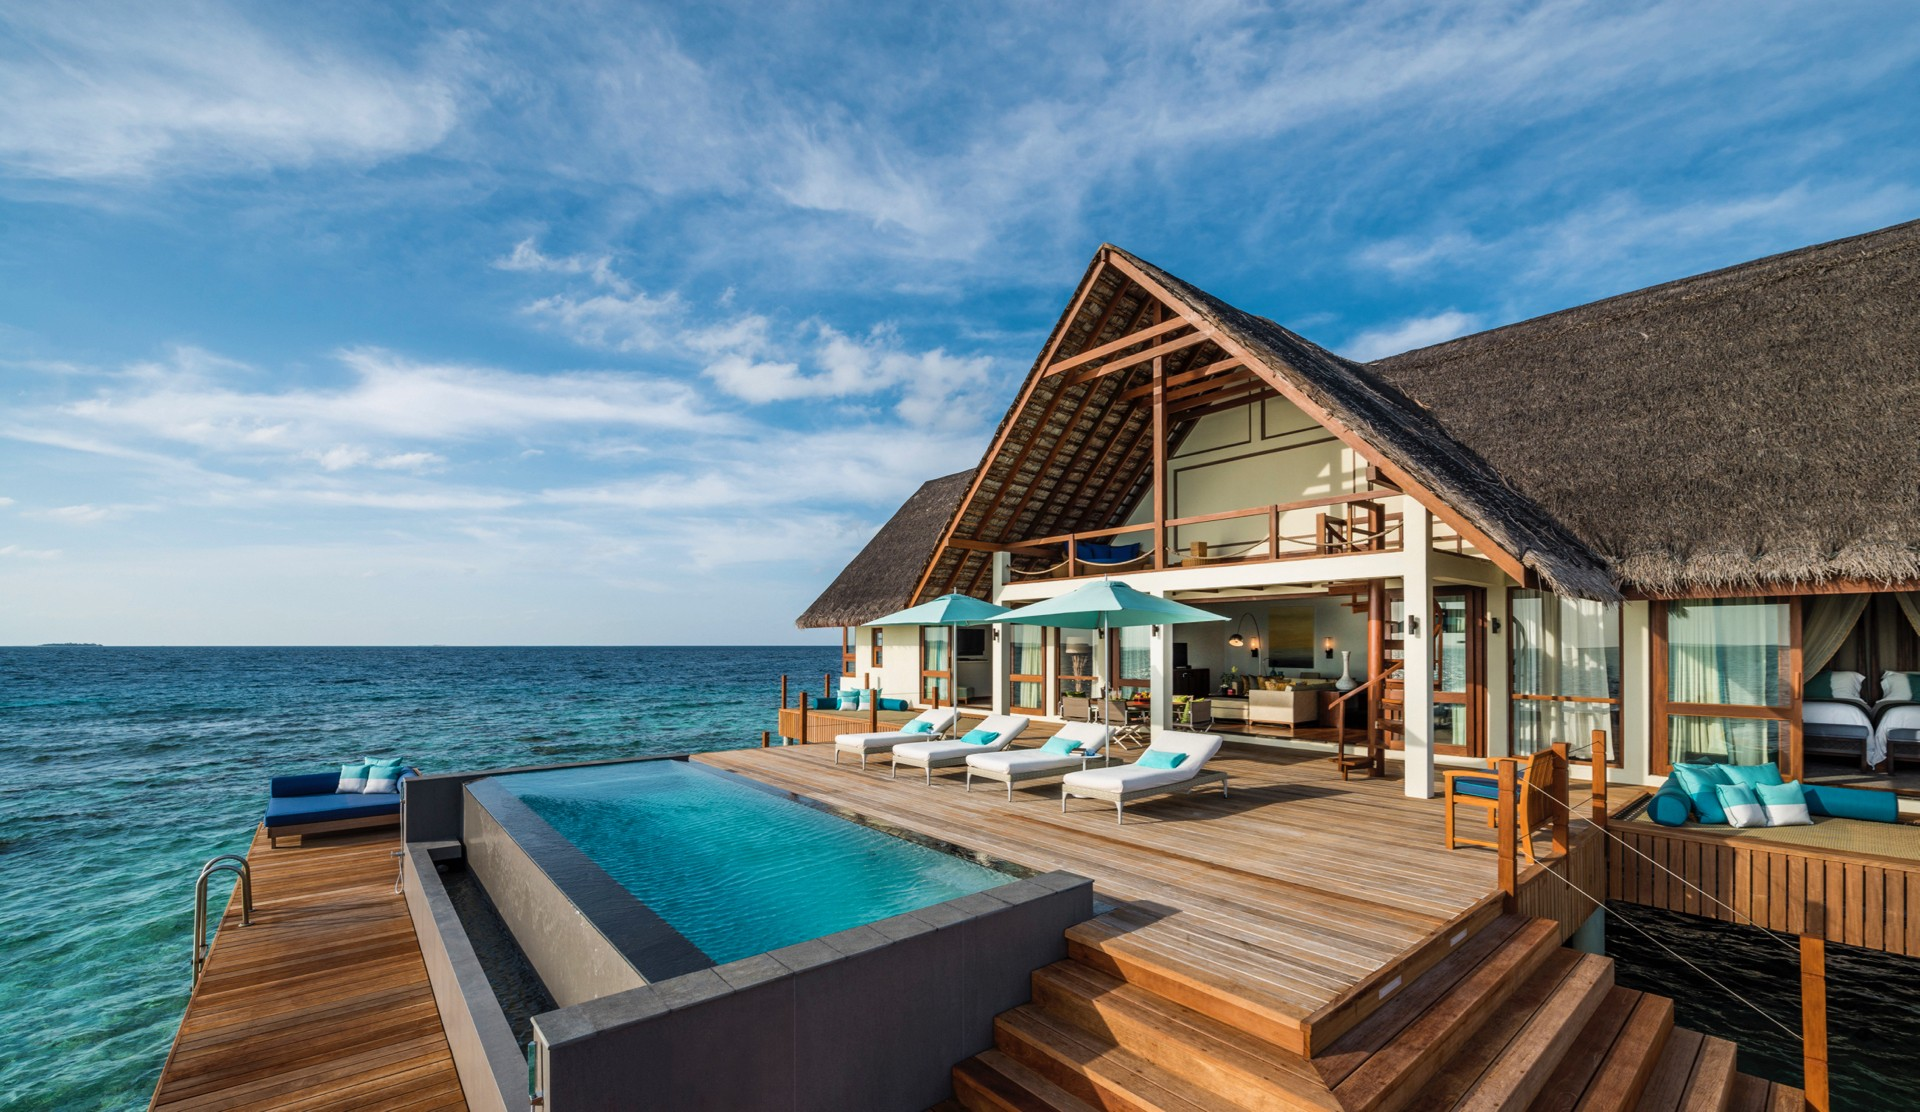 Indian Ocean Maldives Four Seasons Landaa Giraavaru Sunrise 2 bedroom Over Water Bungalow